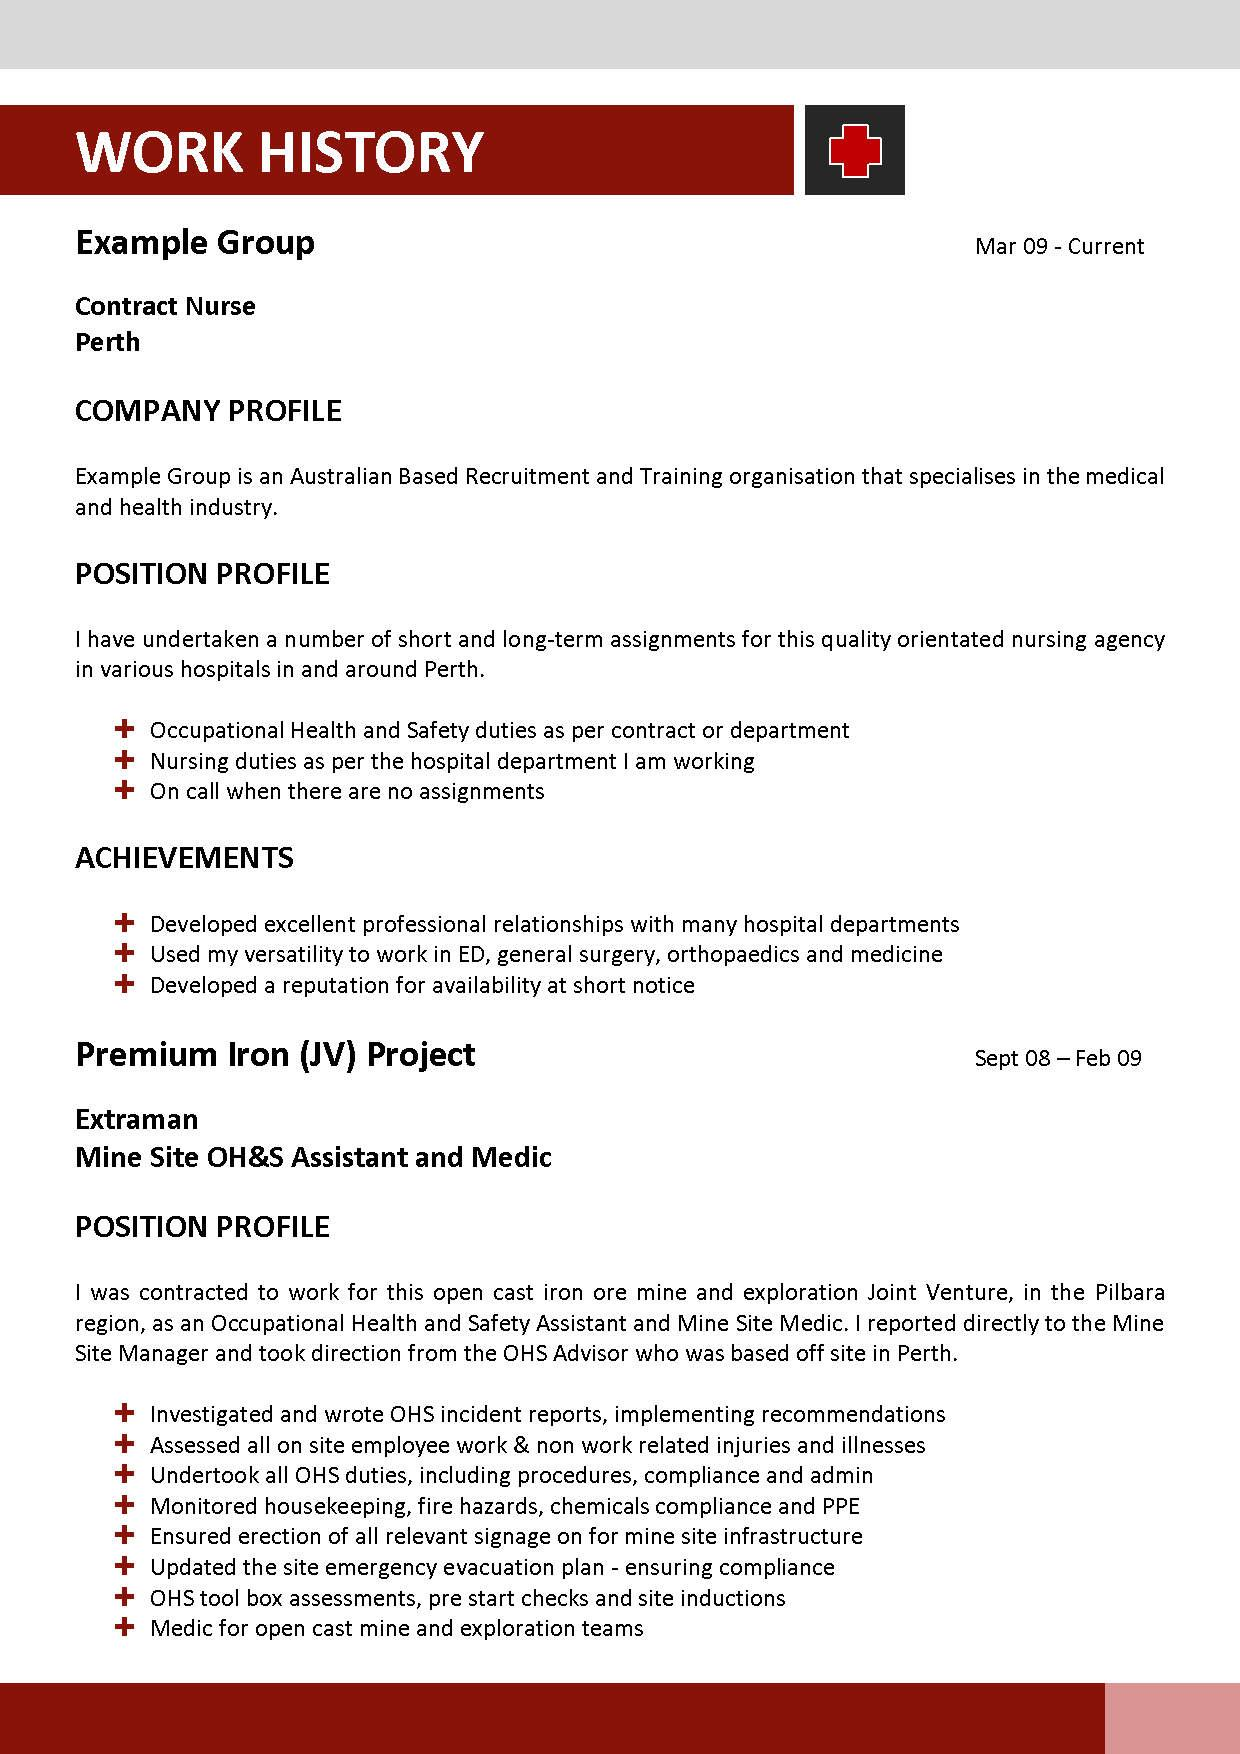 i need help with my resume